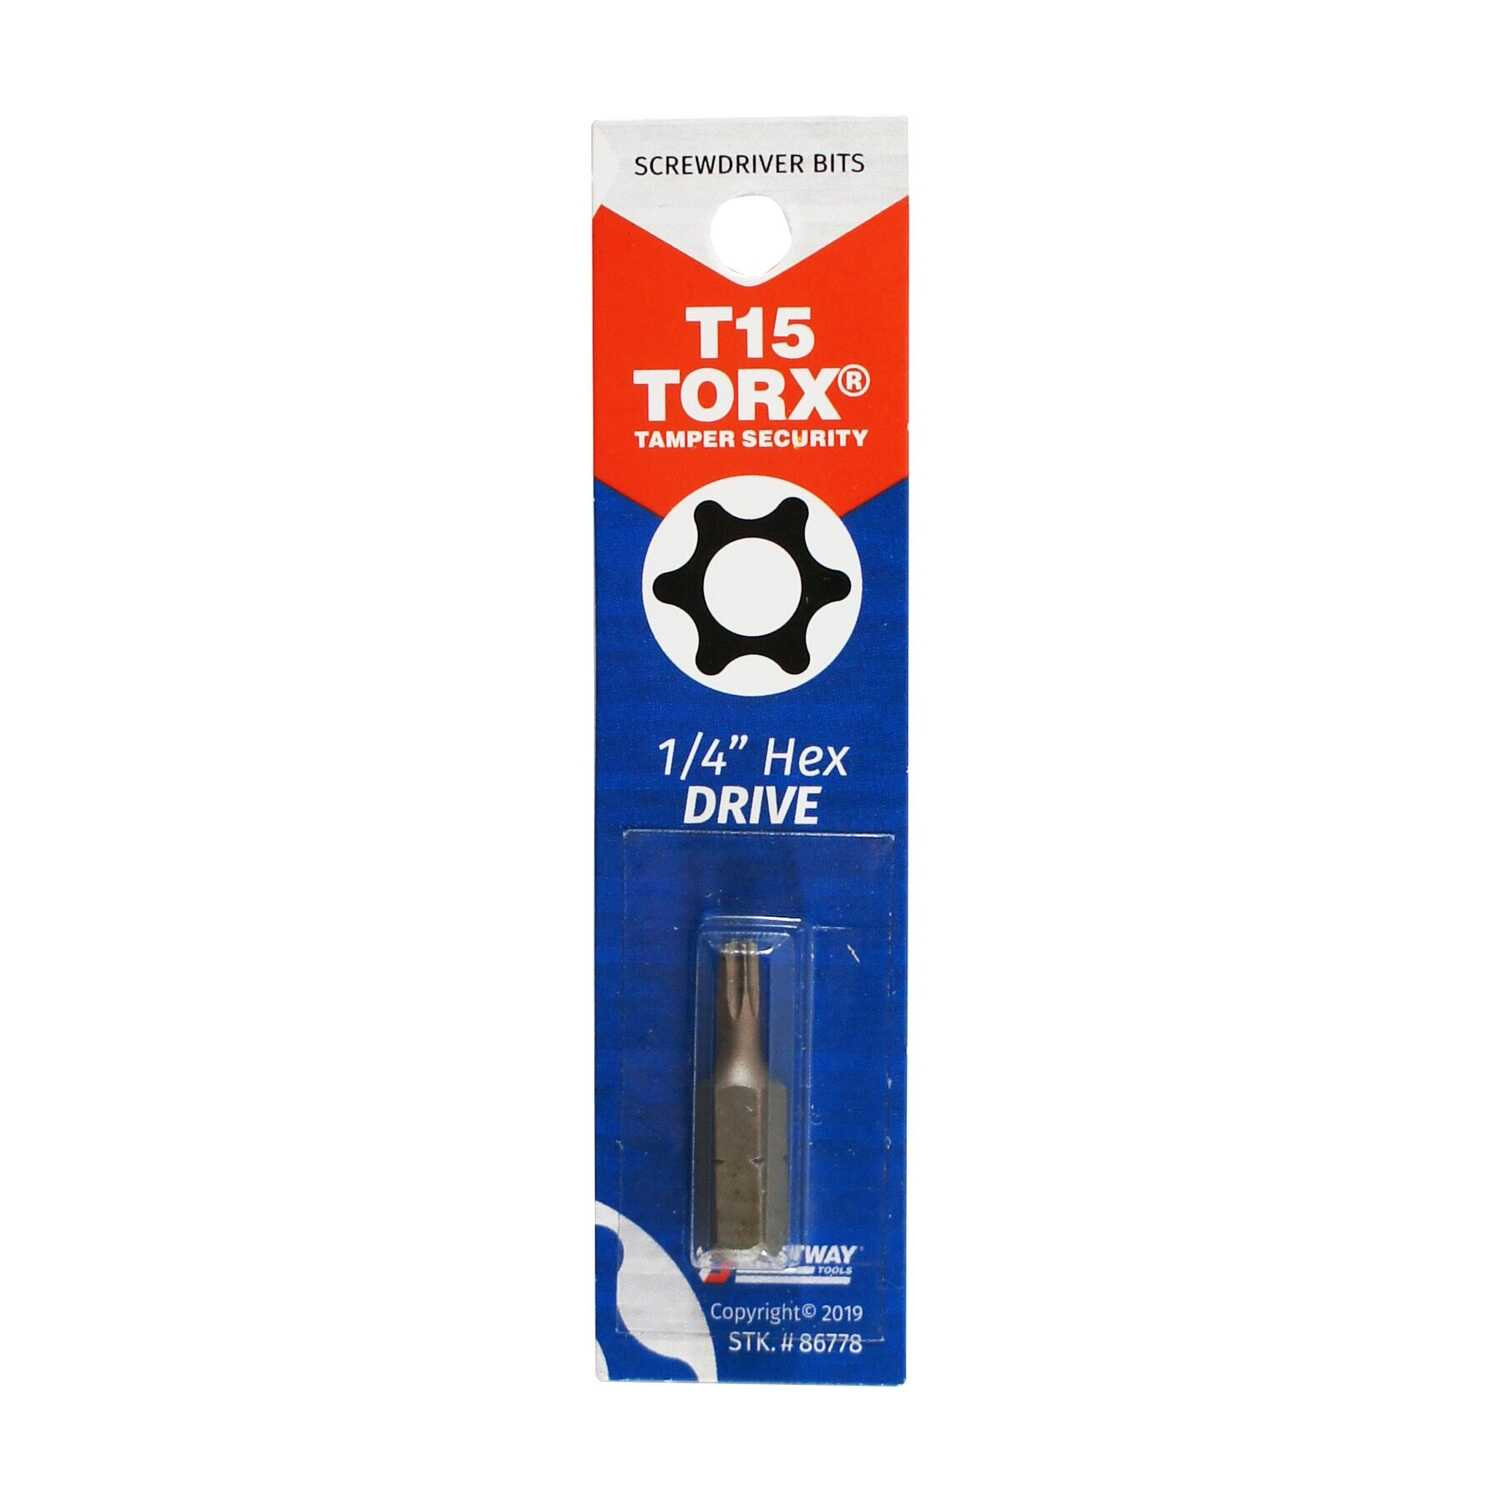 Best Way Tools  Torx  T15   x 1 in. L Screwdriver Bit  Carbon Steel  1/4 in. Hex Shank  1 pc.